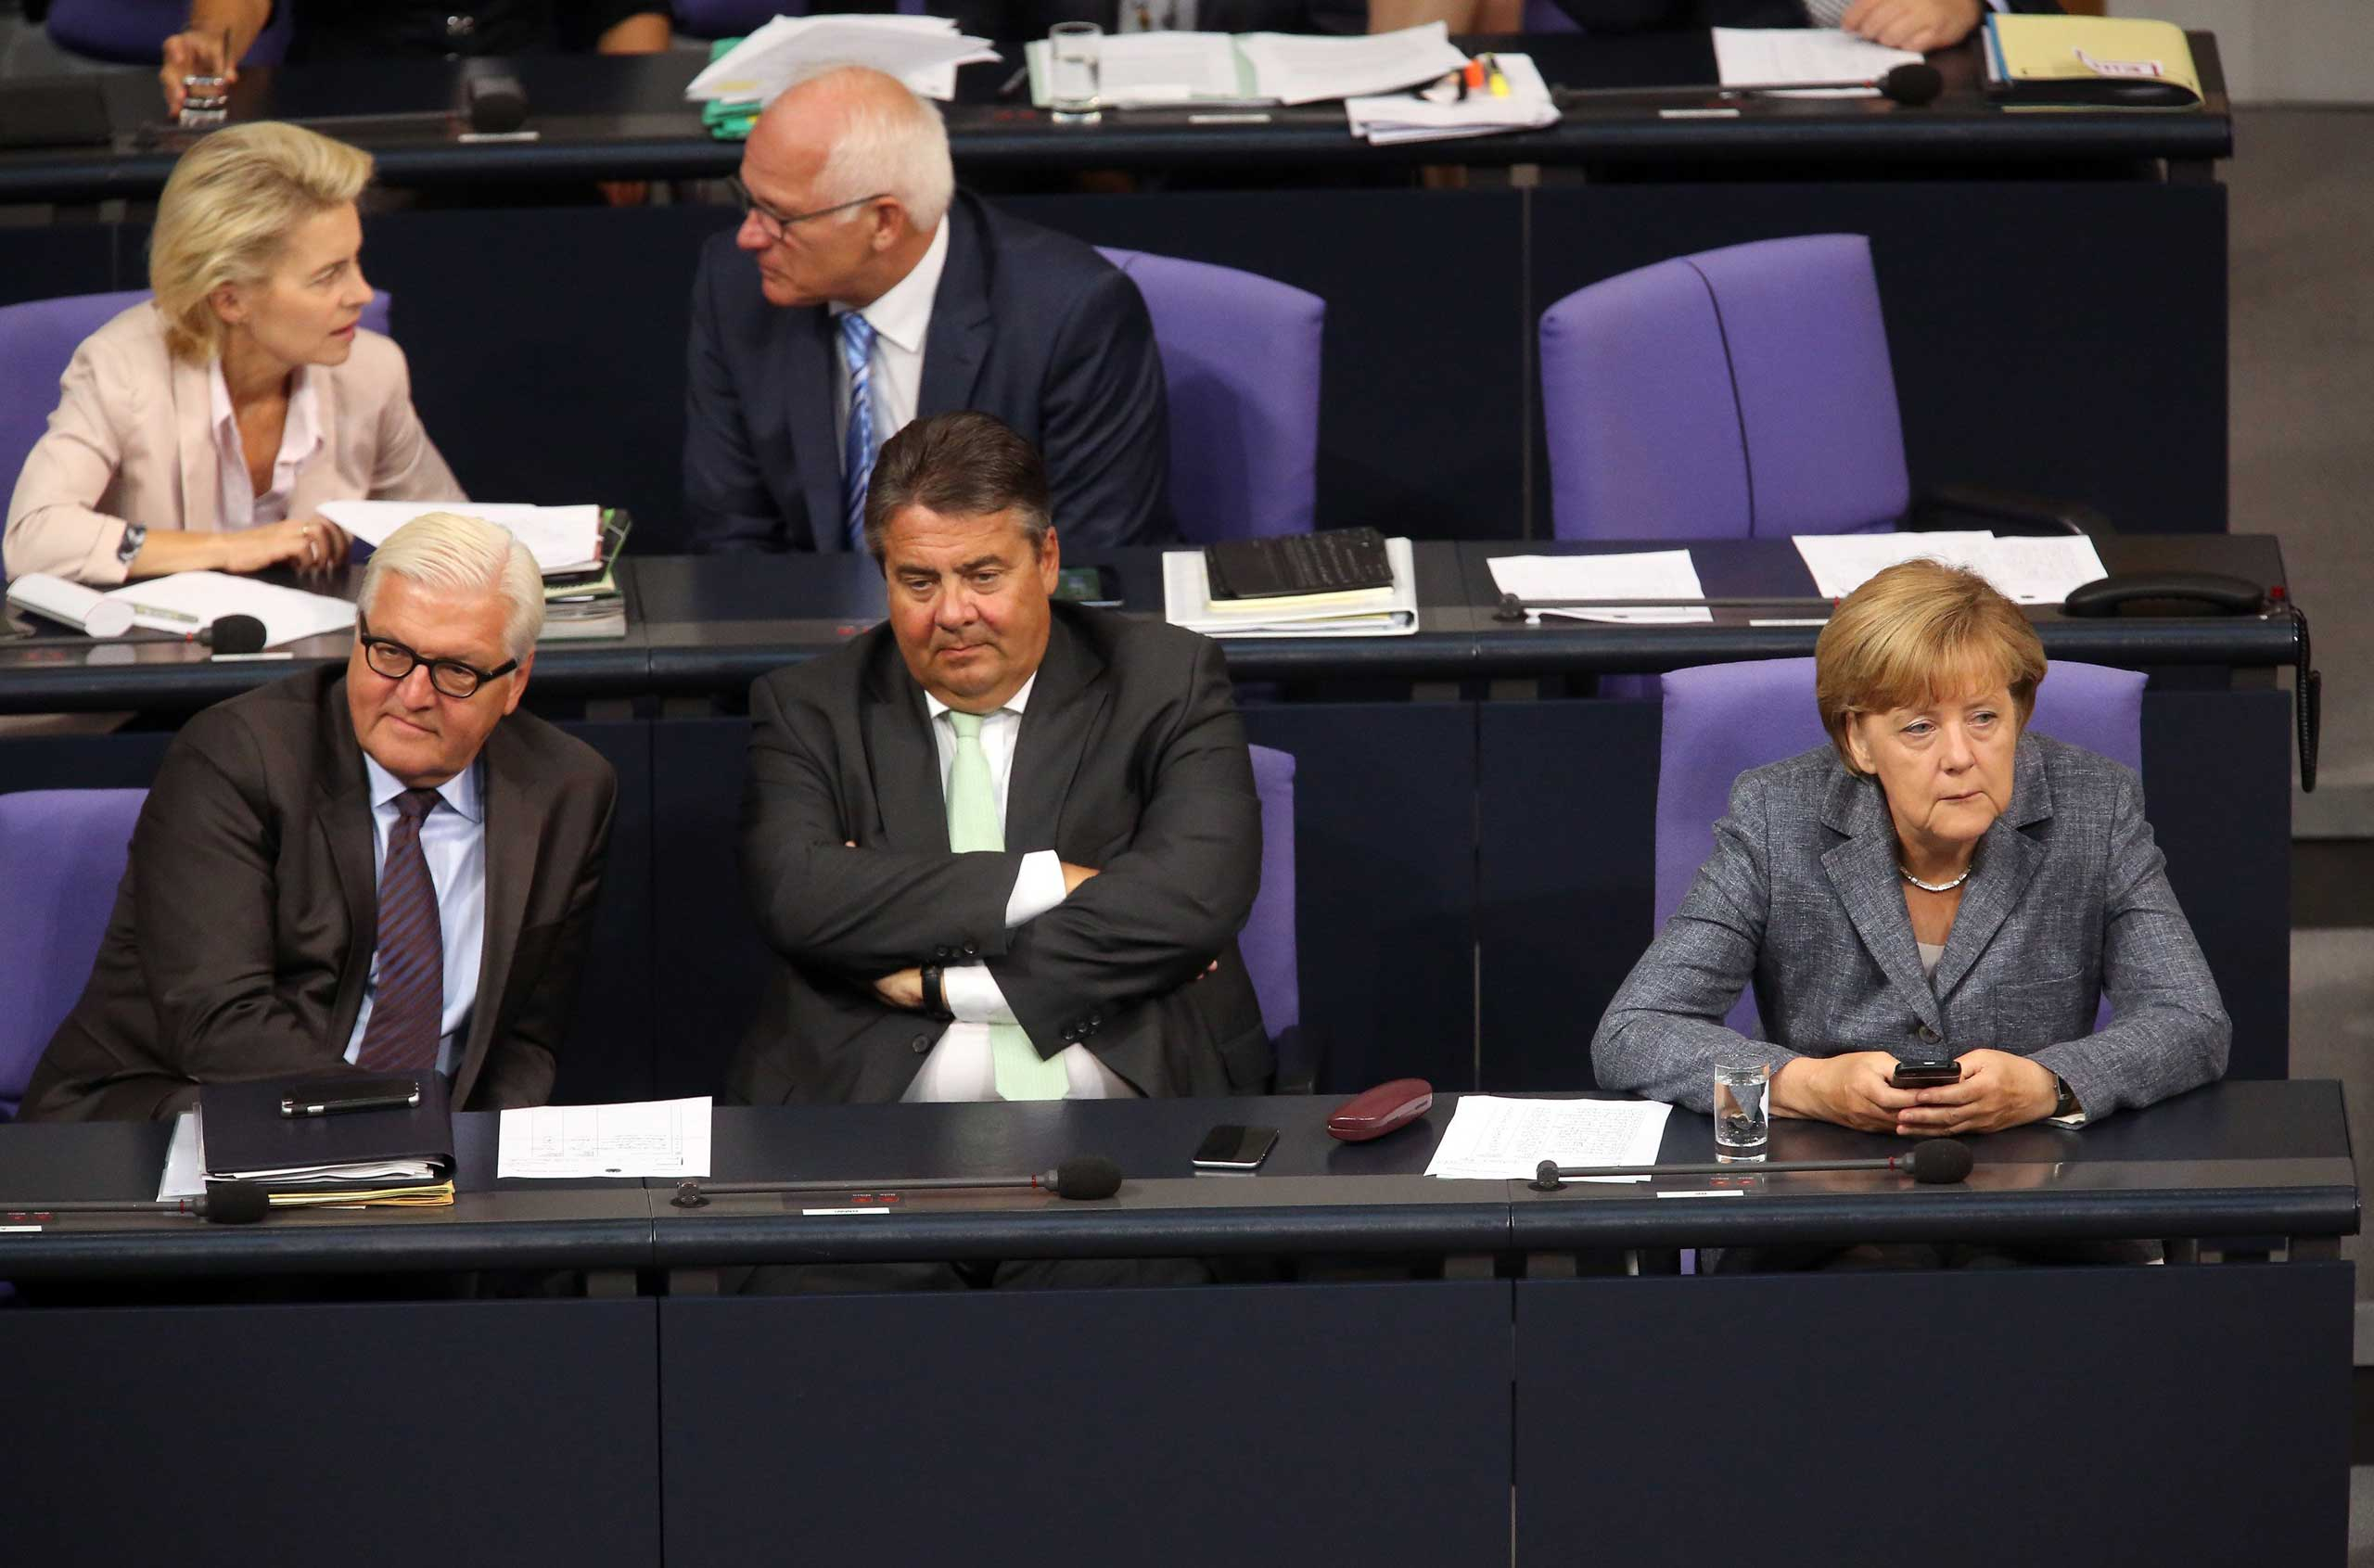 Foreign Minister Frank-Walter Steinmeier, Vice Chancellor and Economy and Energy Minister Sigmar Gabrie and German Chancellor Angela Merkel attend a meeting of the Bundestag, in Berlin, on Aug. 19, 2015.